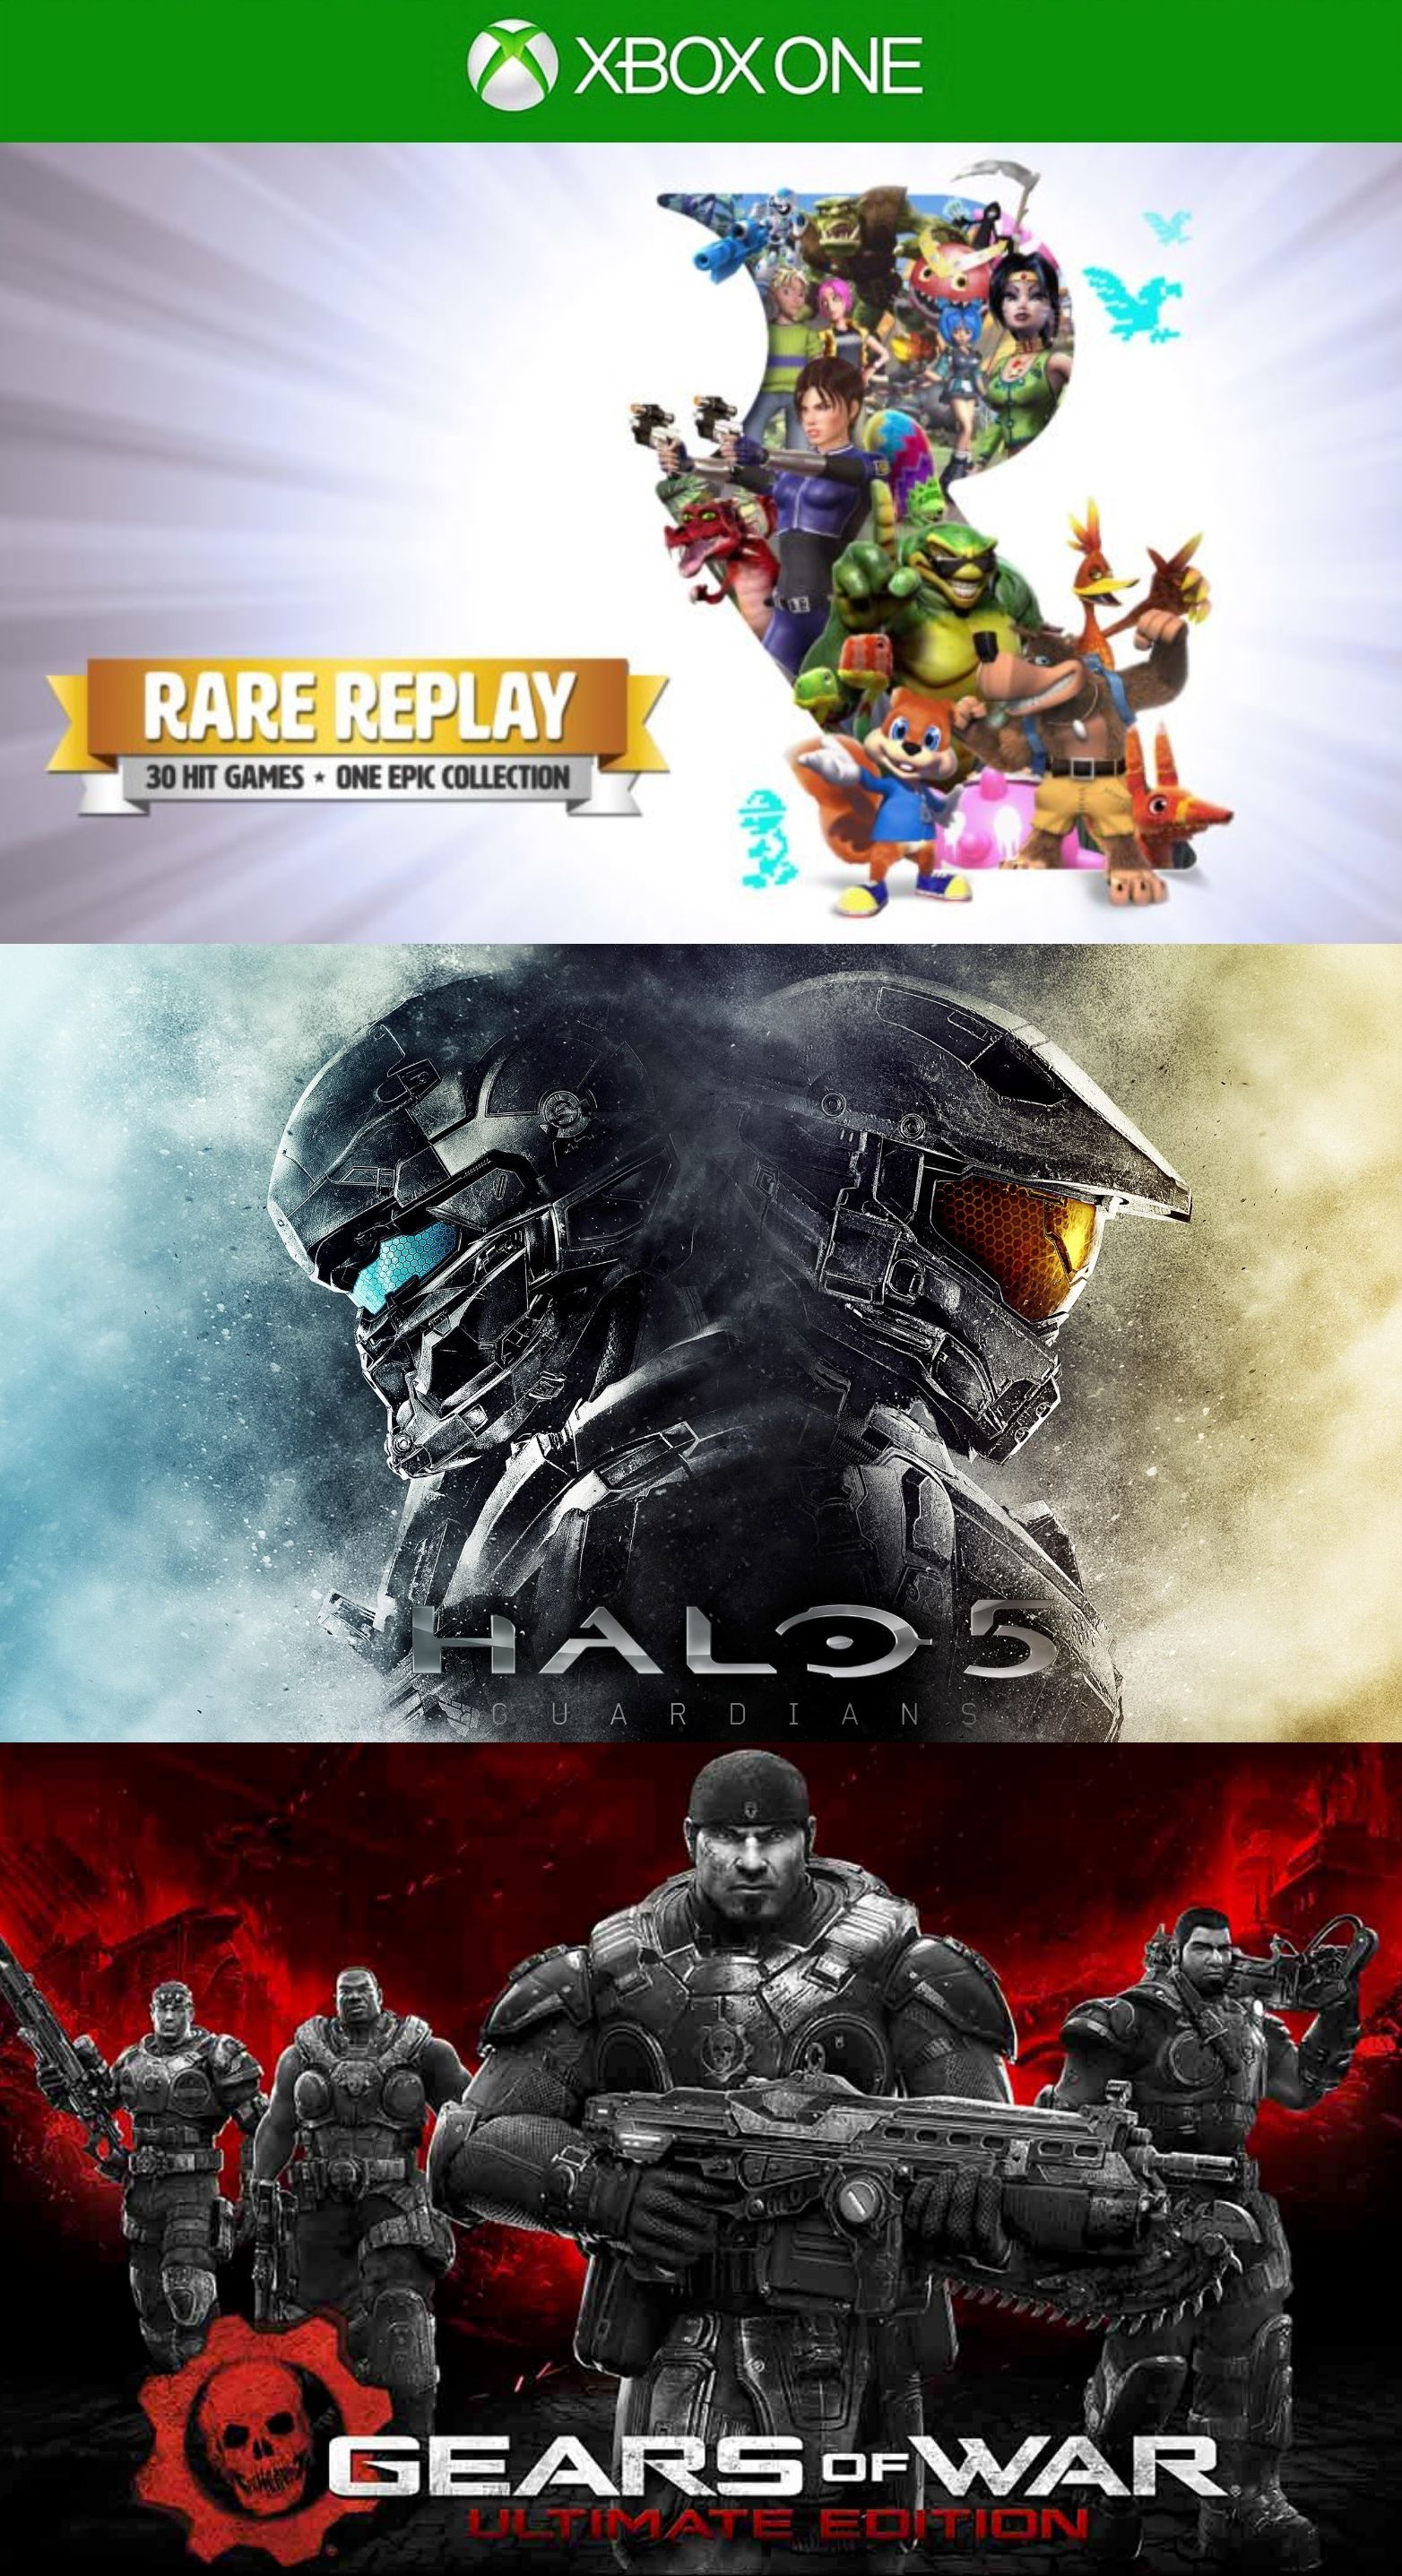 Rare Replay + HALO 5 + Gears Of War Ultimate Edition Xbox ONE Ваучер на  скачивание